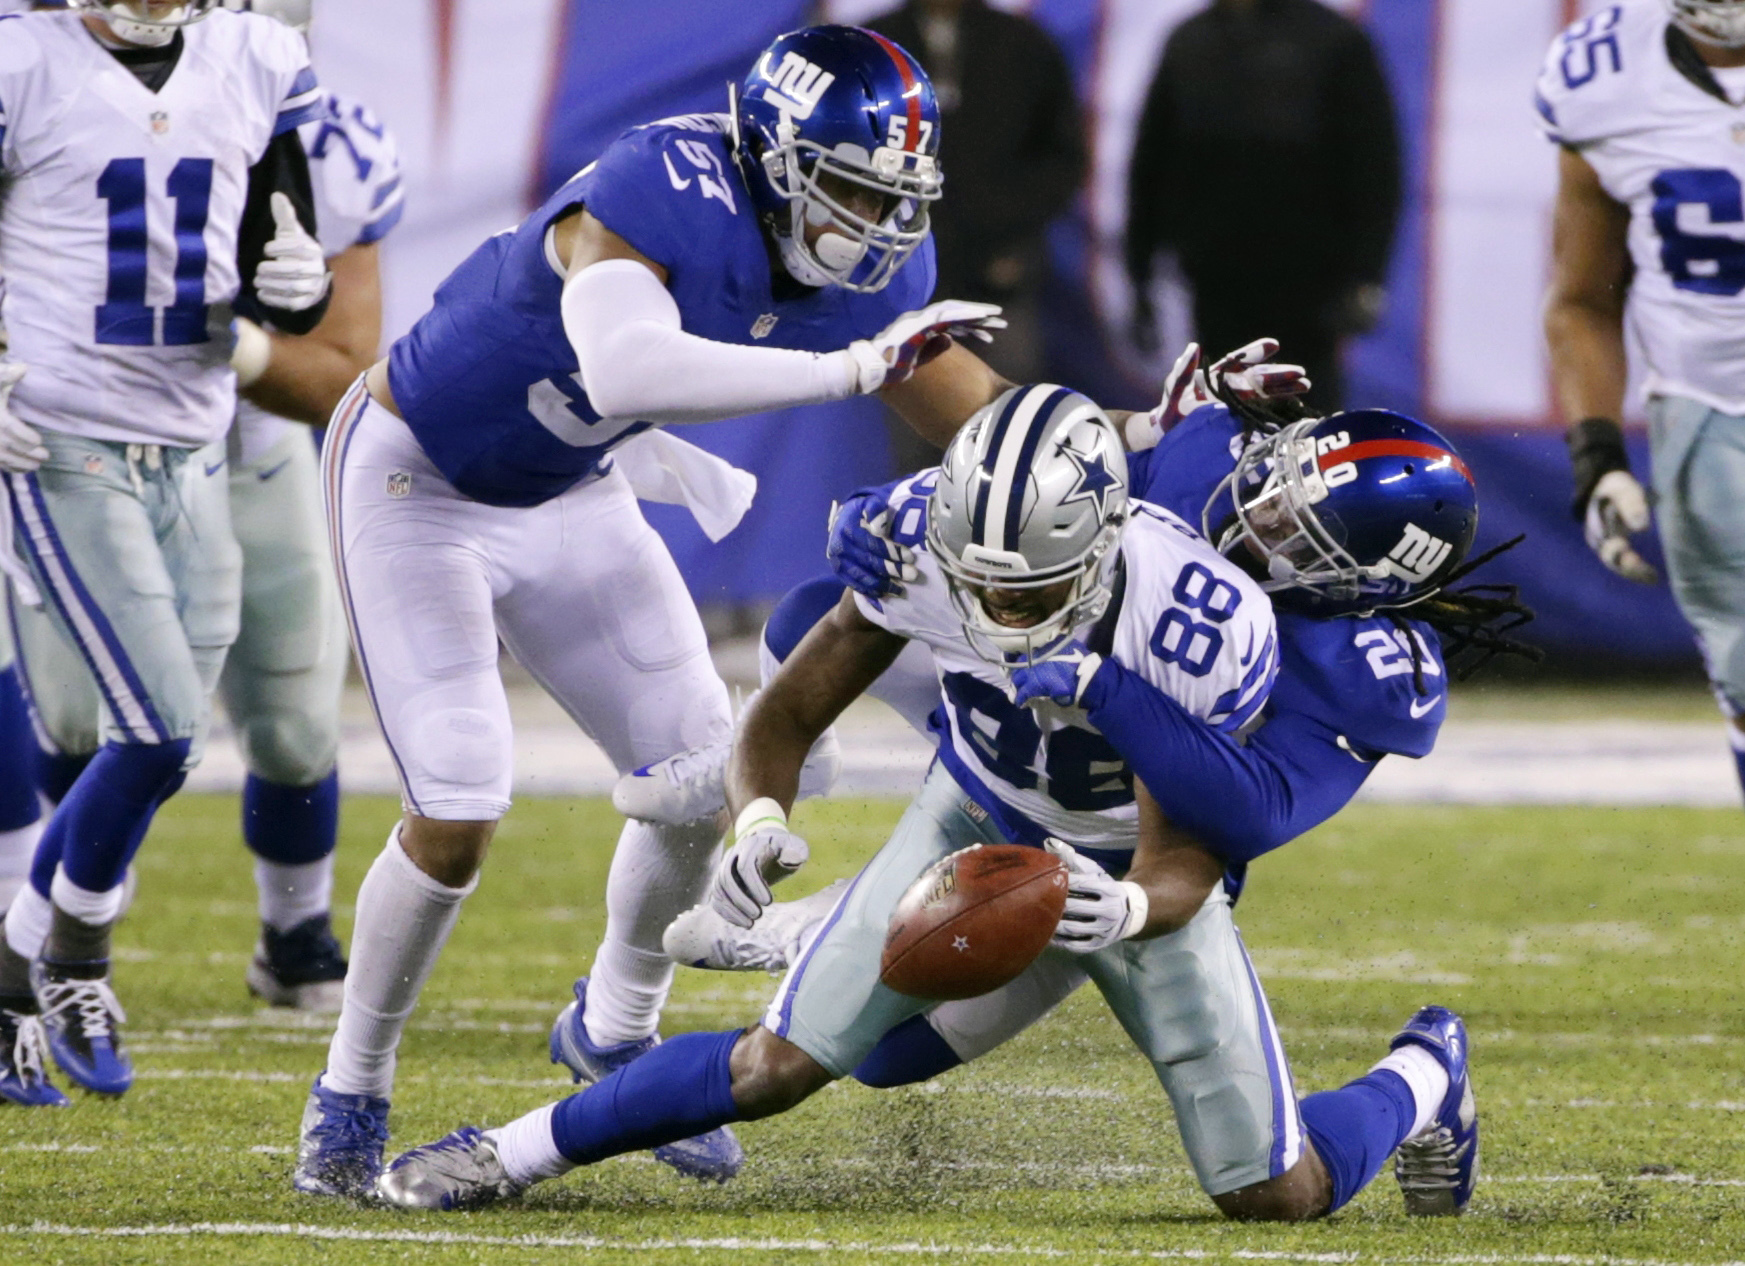 Dallas Cowboys wide receiver Dez Bryant (88) fumbles the ball during the second half of an NFL football game as New York Giants' Janoris Jenkins (20) and Keenan Robinson (57) defend Sunday, Dec. 11, 2016, in East Rutherford, N.J. (AP Photo/Seth Wenig)